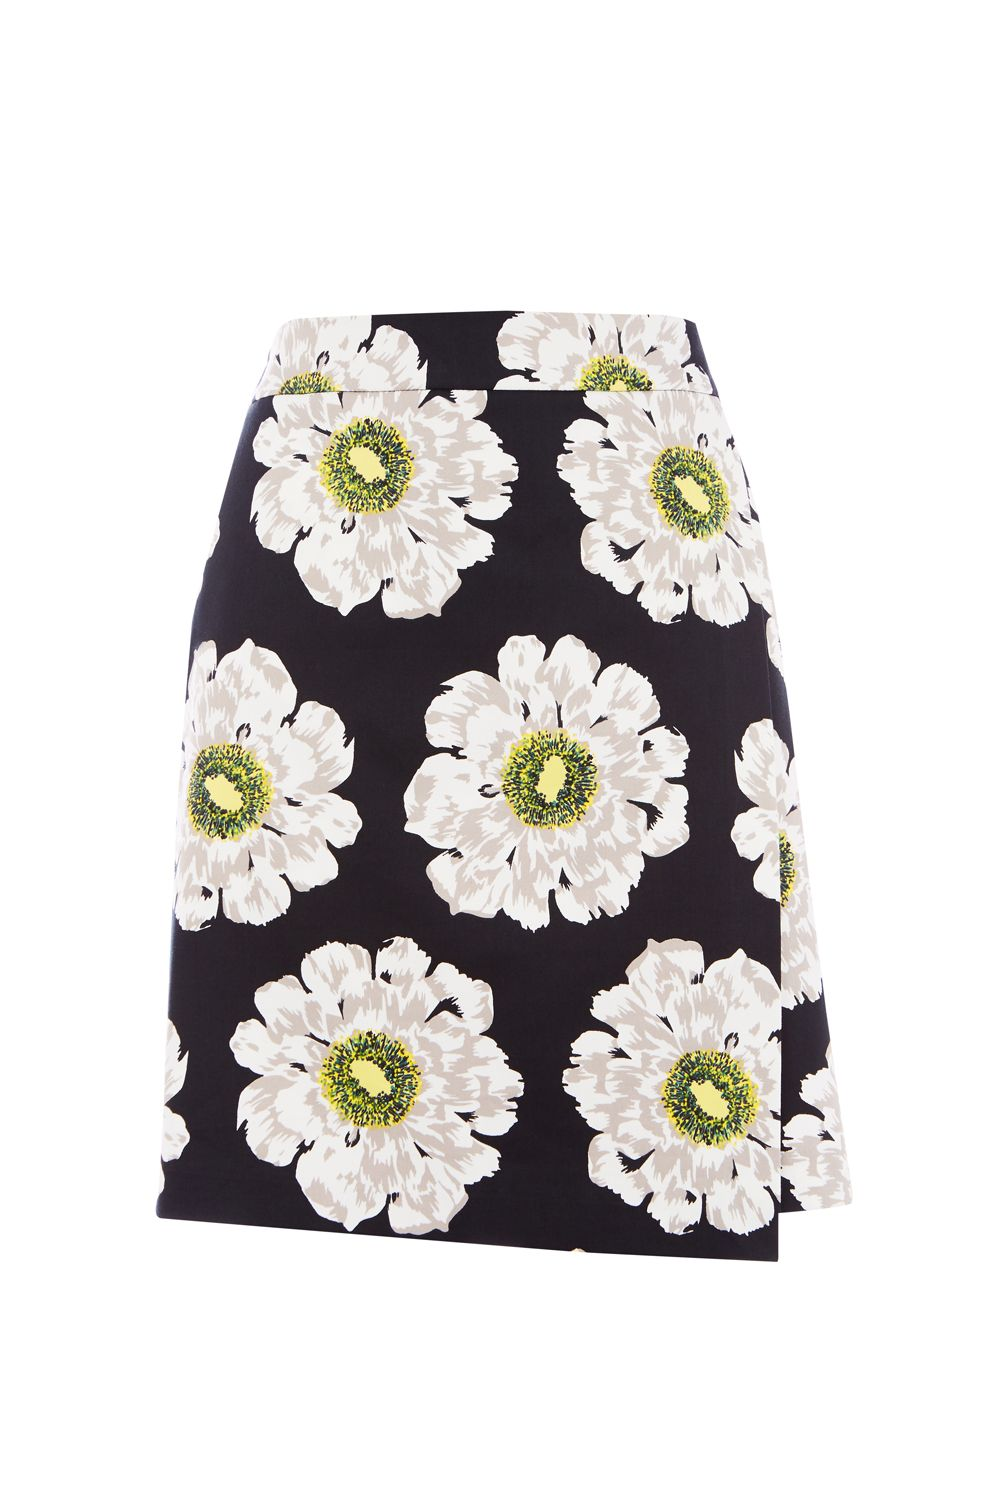 Warehouse Melody Floral Skirt, Multi-Coloured